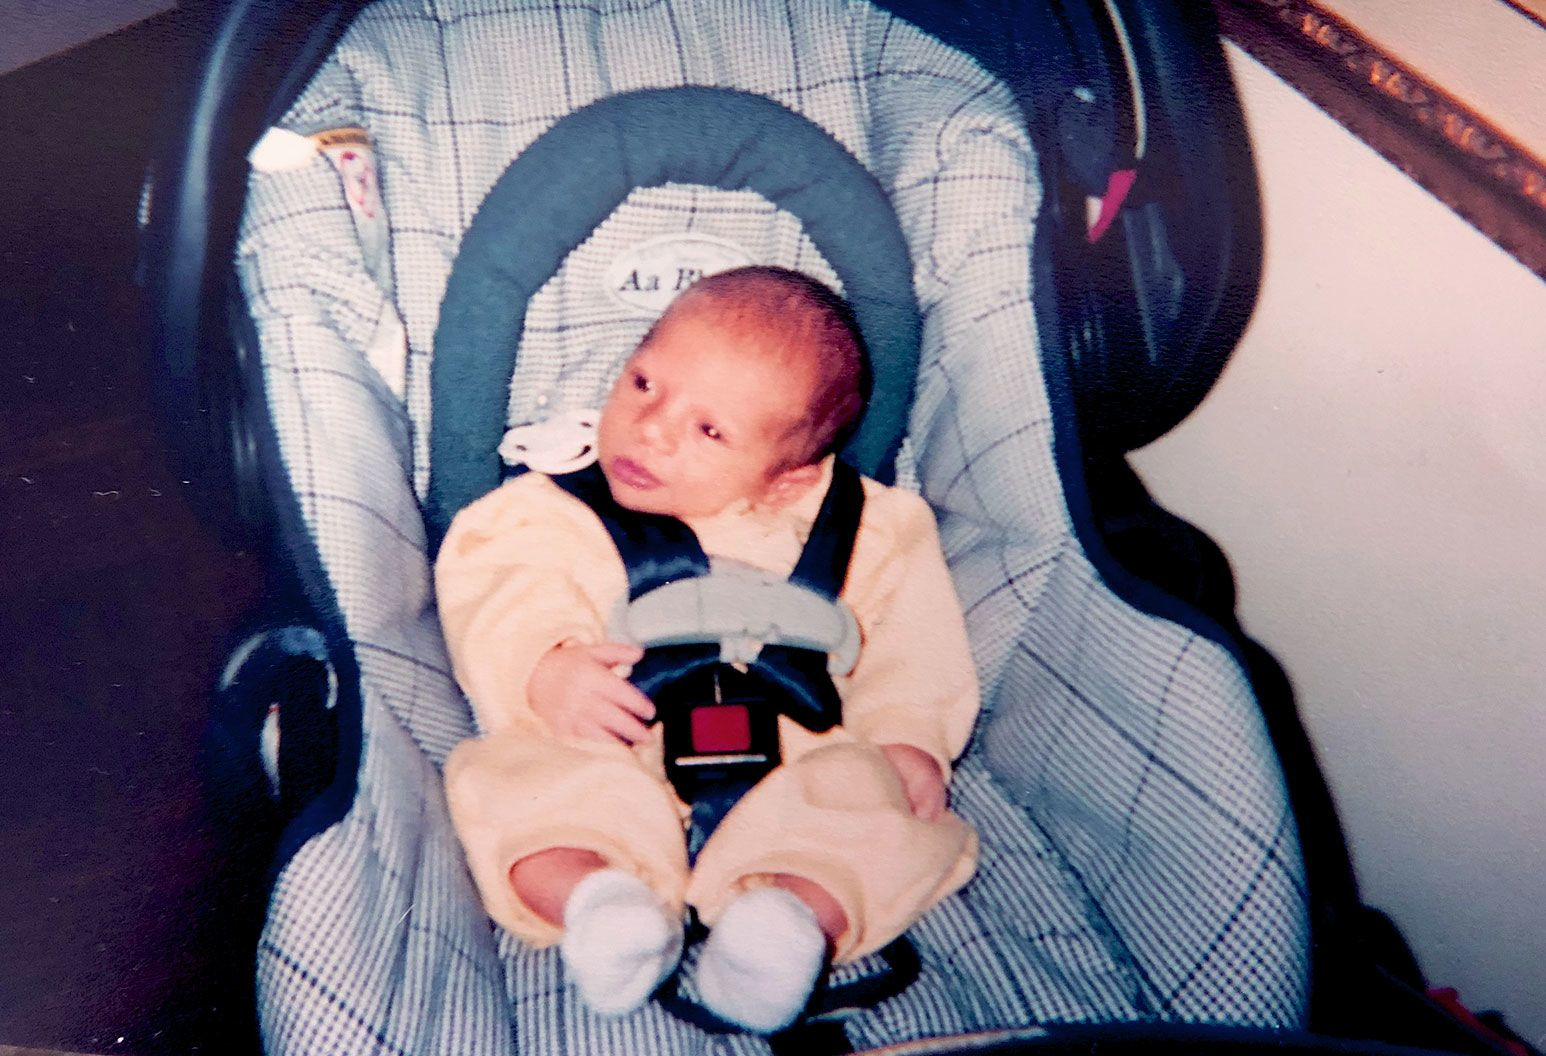 A newborn baby in a yellow onesie sits in a blue cushioned car seat.